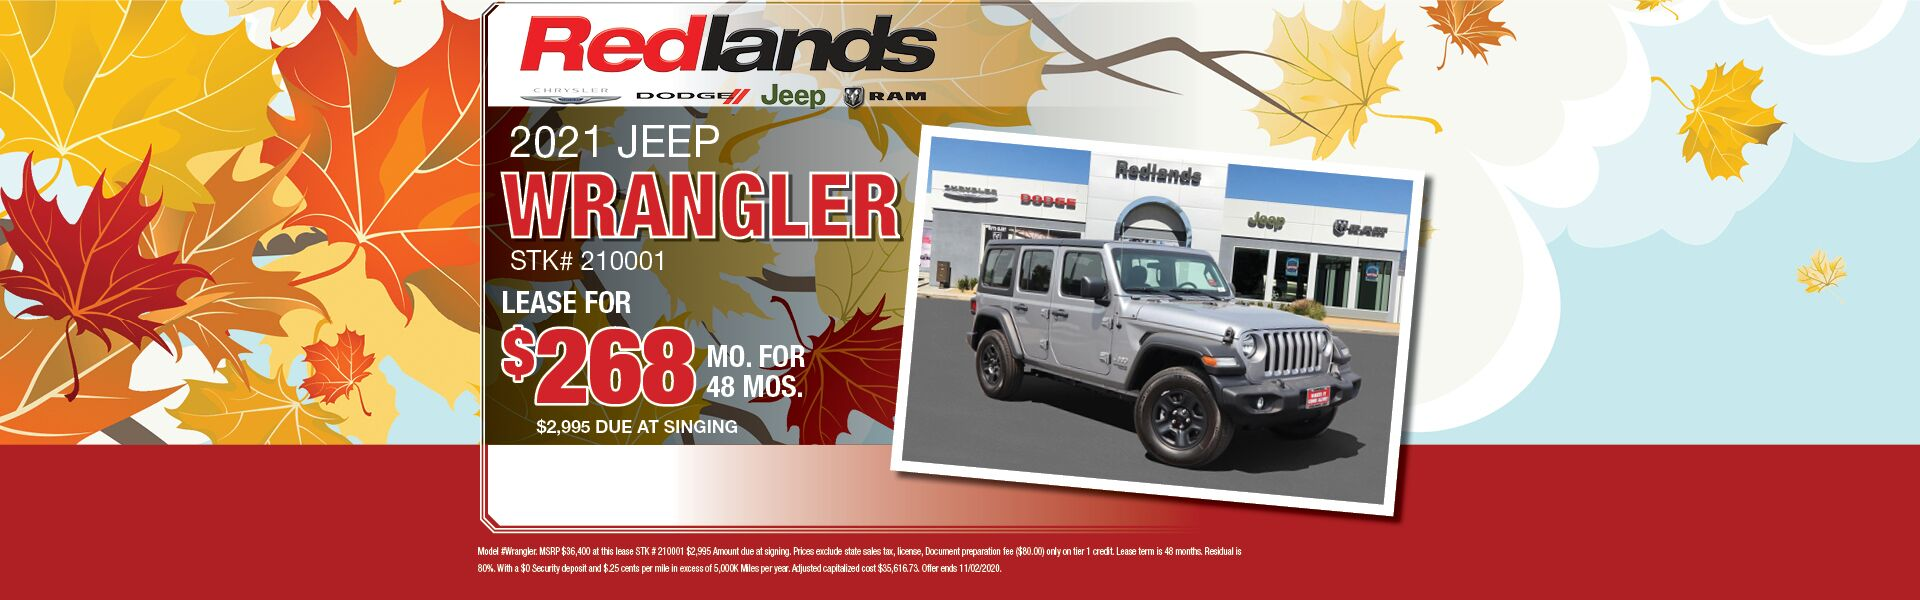 2021 Jeep Wrangler Lease Offer